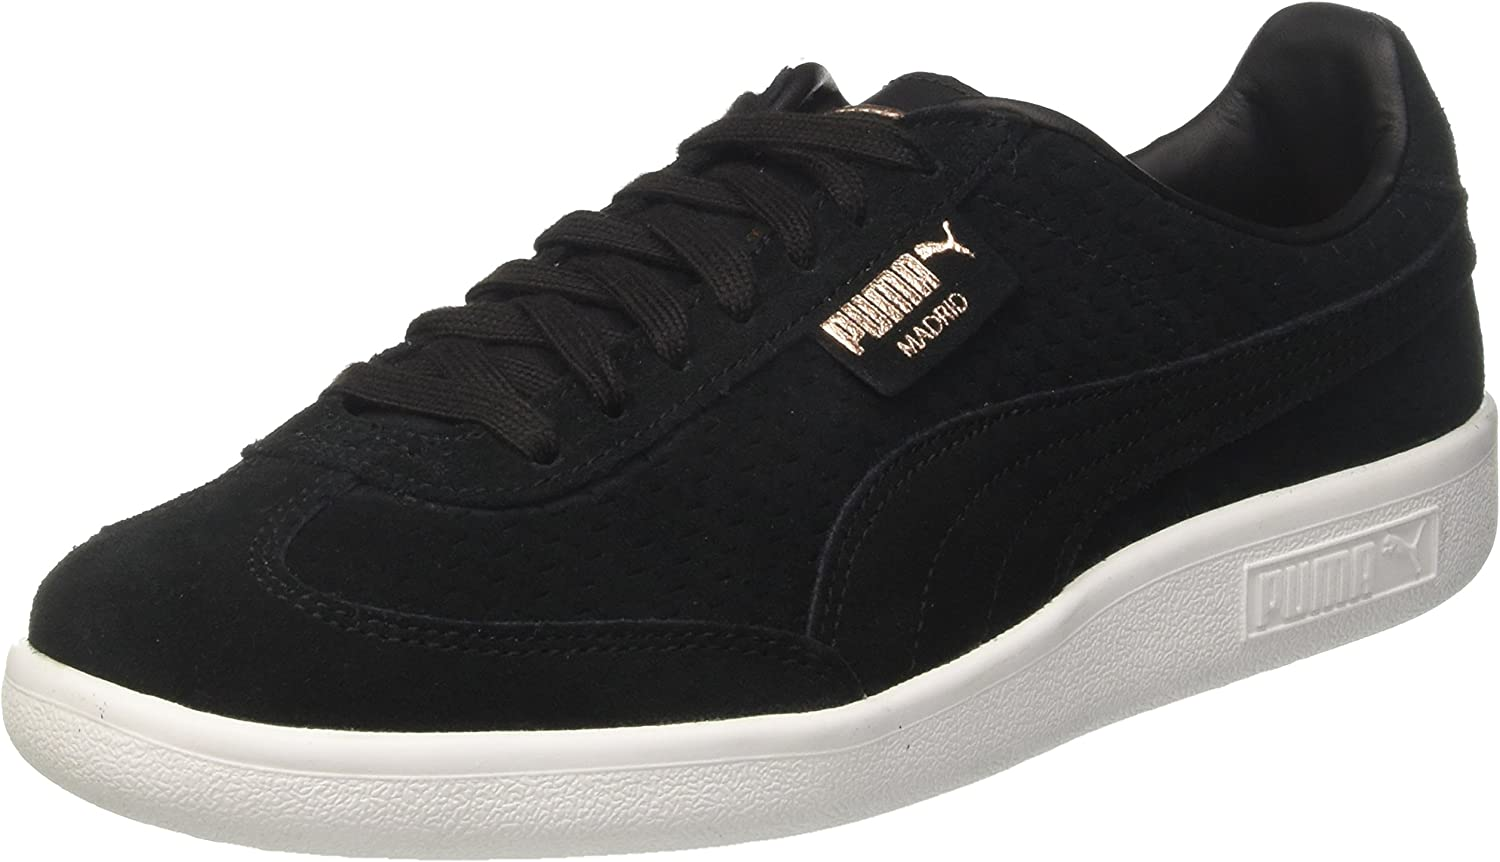 PUMA Women's Madrid Perf Suede WN's Trainers